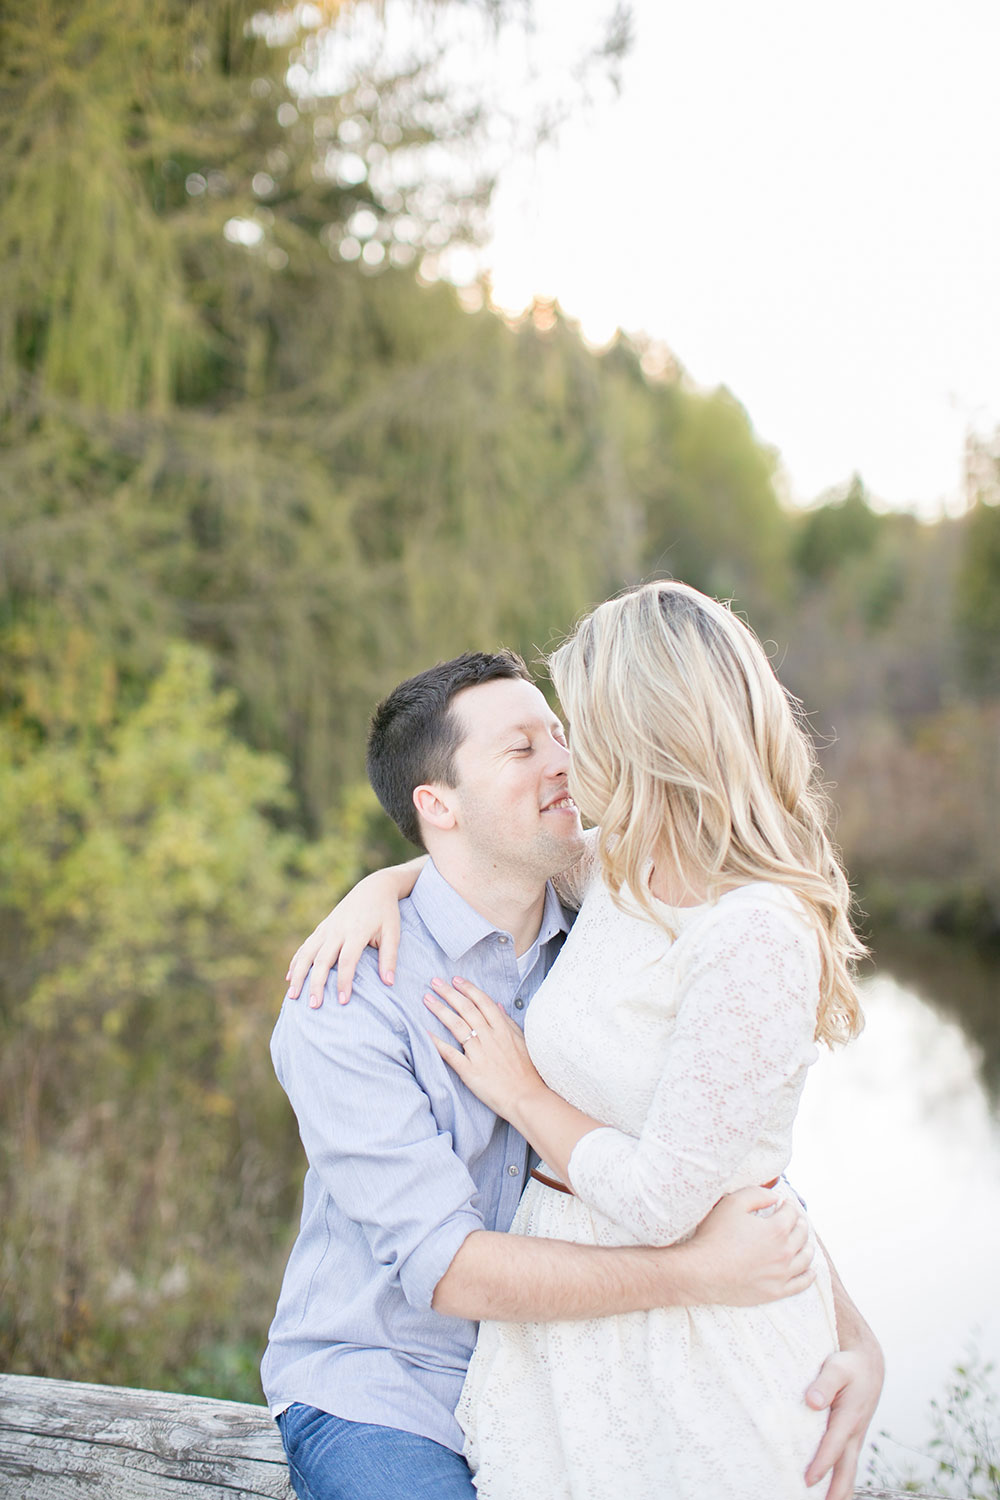 Albion-Hills-Conservation-Park-engagement-session-caledon-photo-by-philosophy-studios-eva-derrick-photography-010.jpg